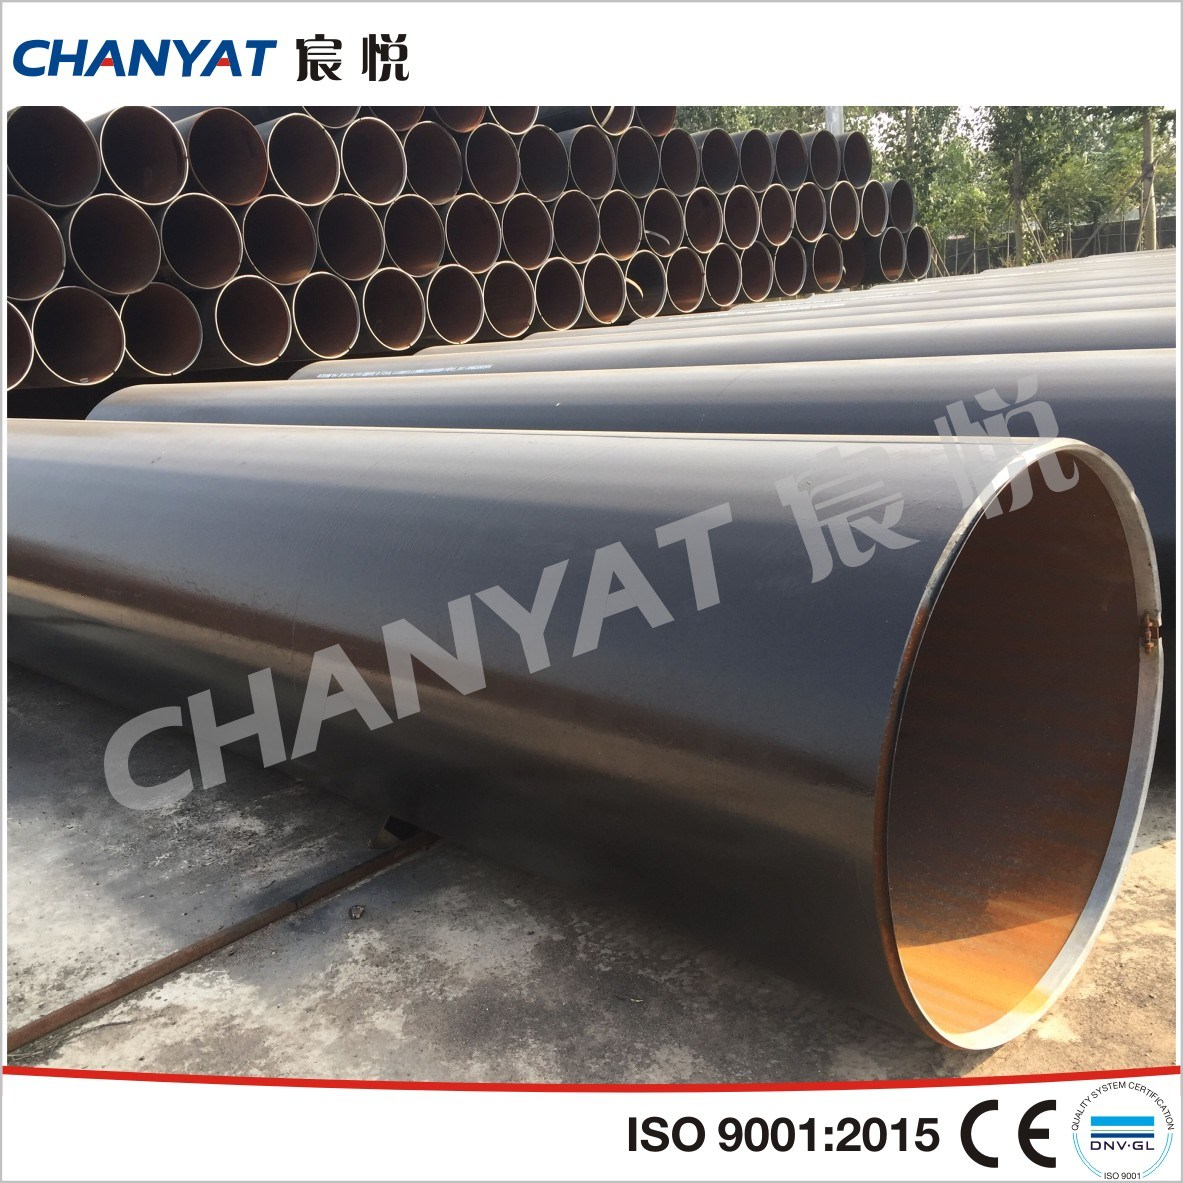 Line Steel Welded Pipe API 5L (GrB, GrBN, X52)